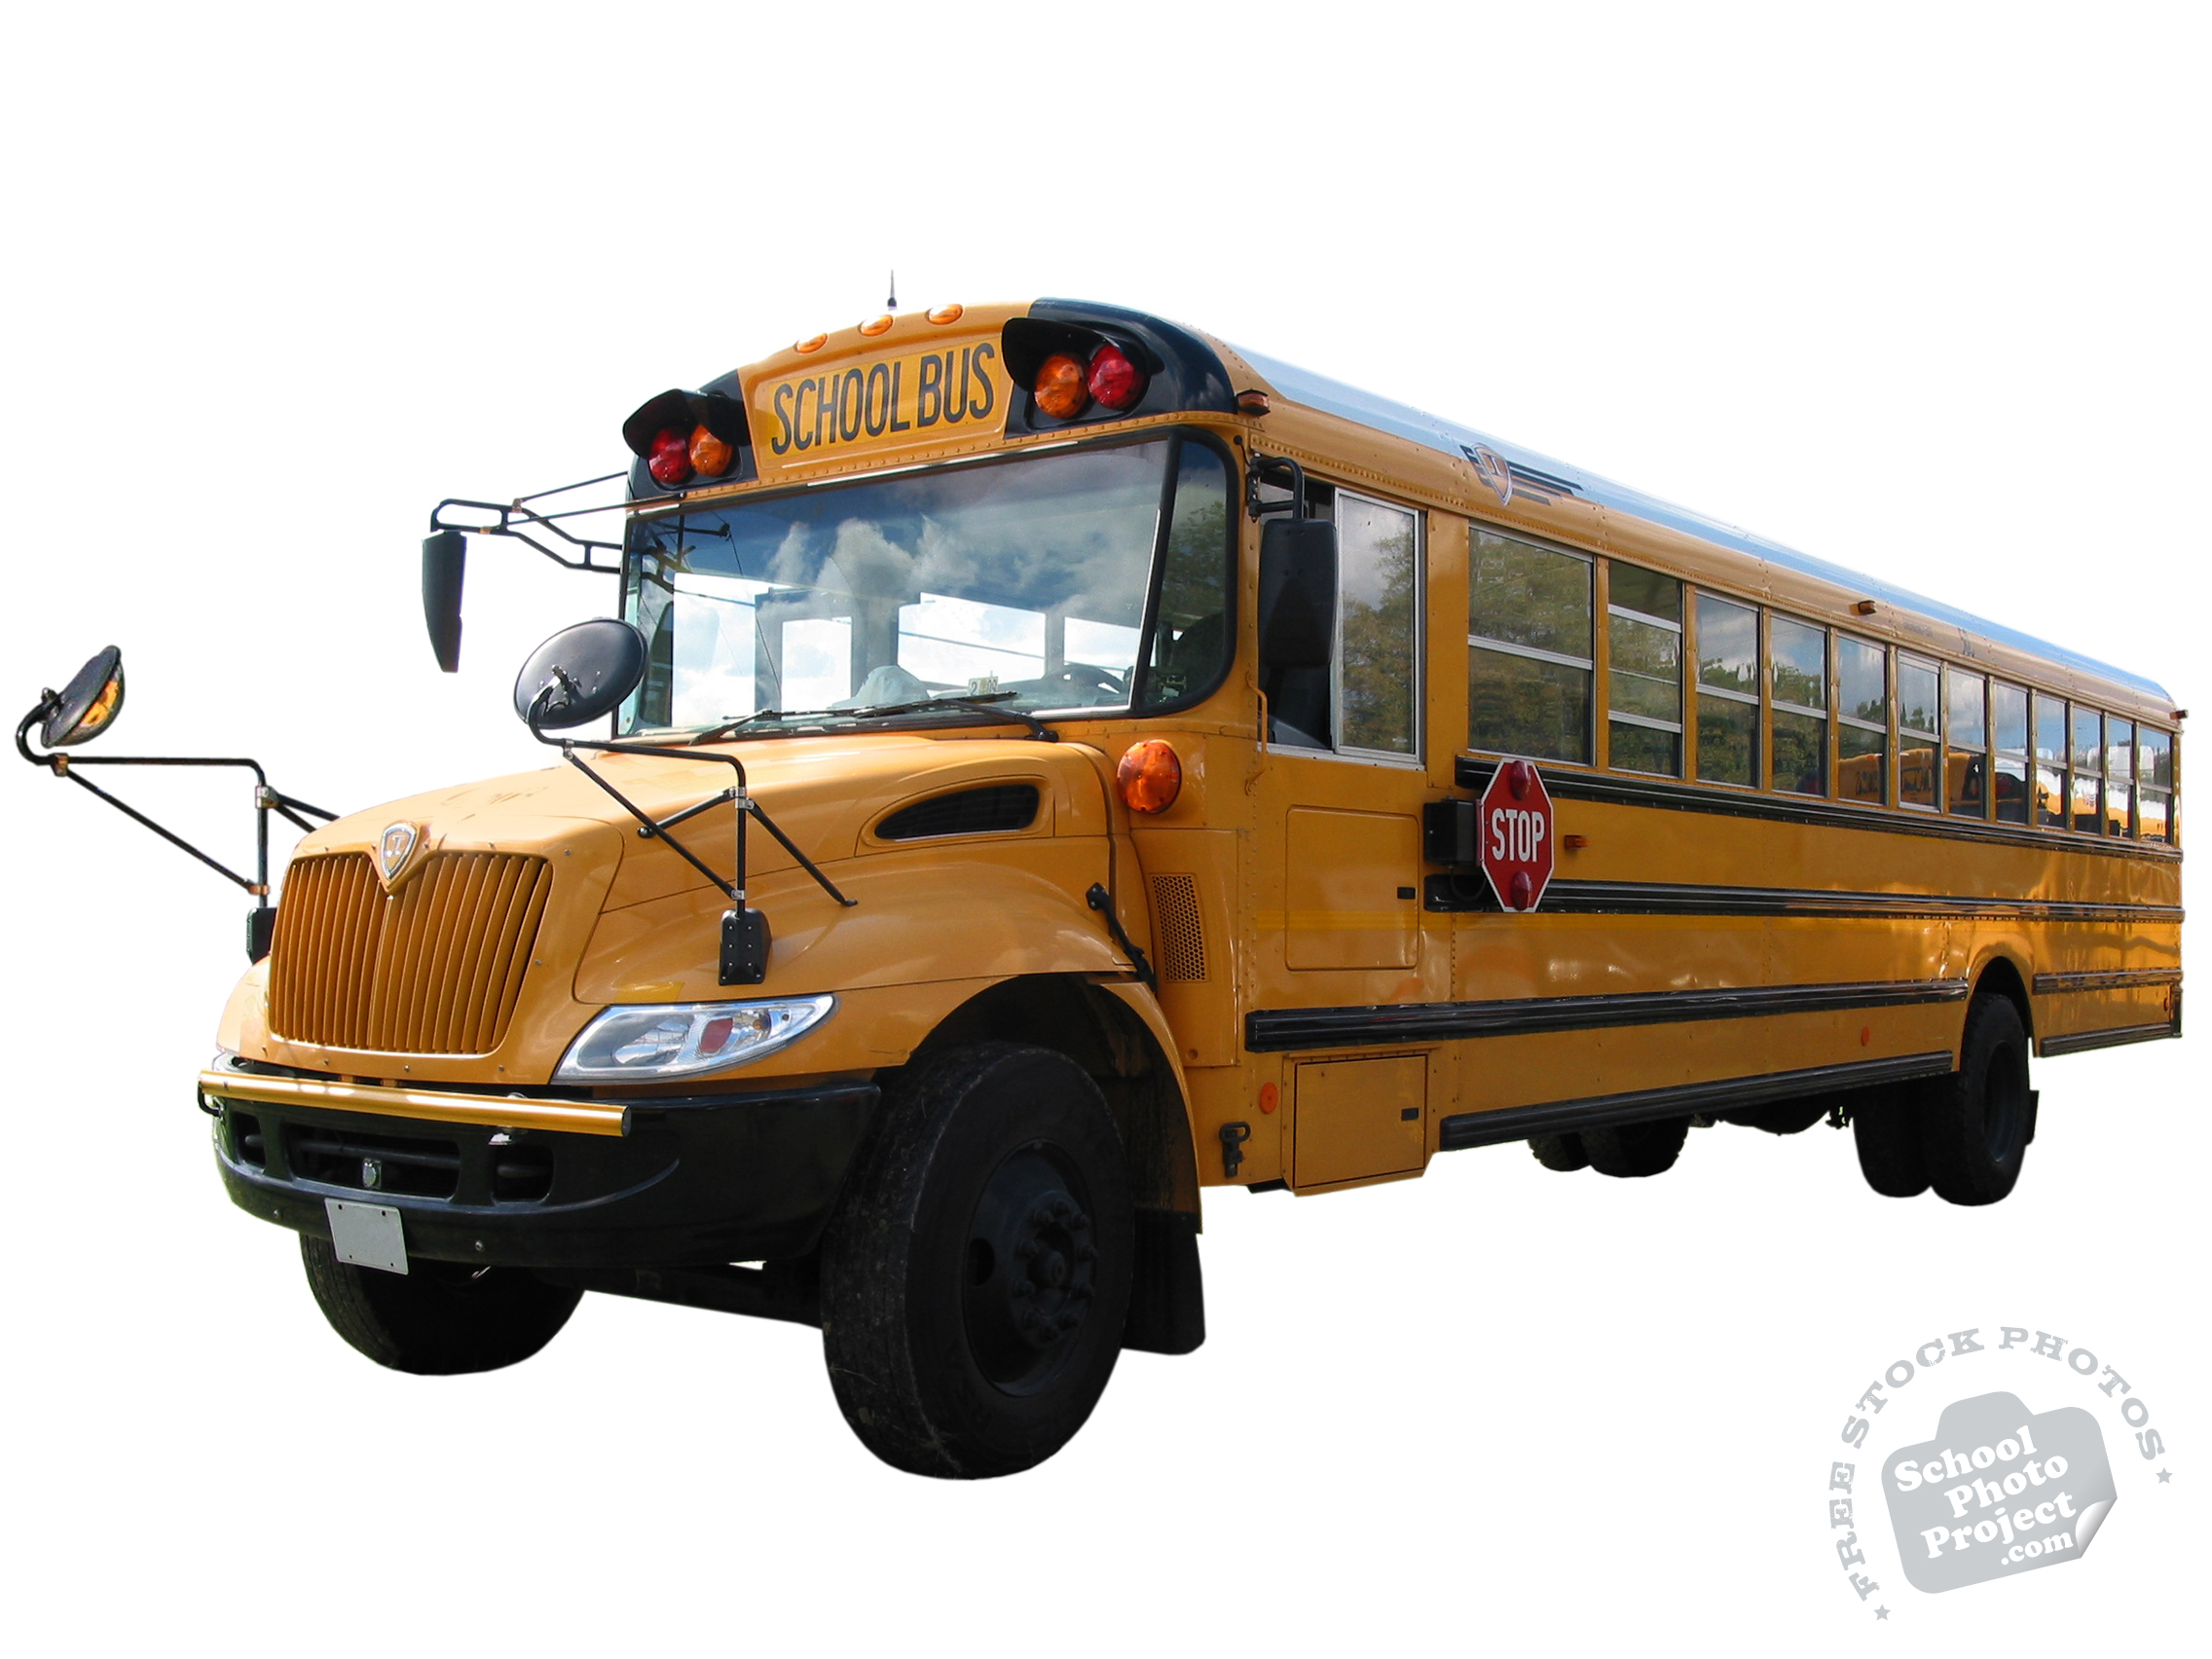 Photos Picture School Bus Free Stock Photo Image Picture School Bus Royalty